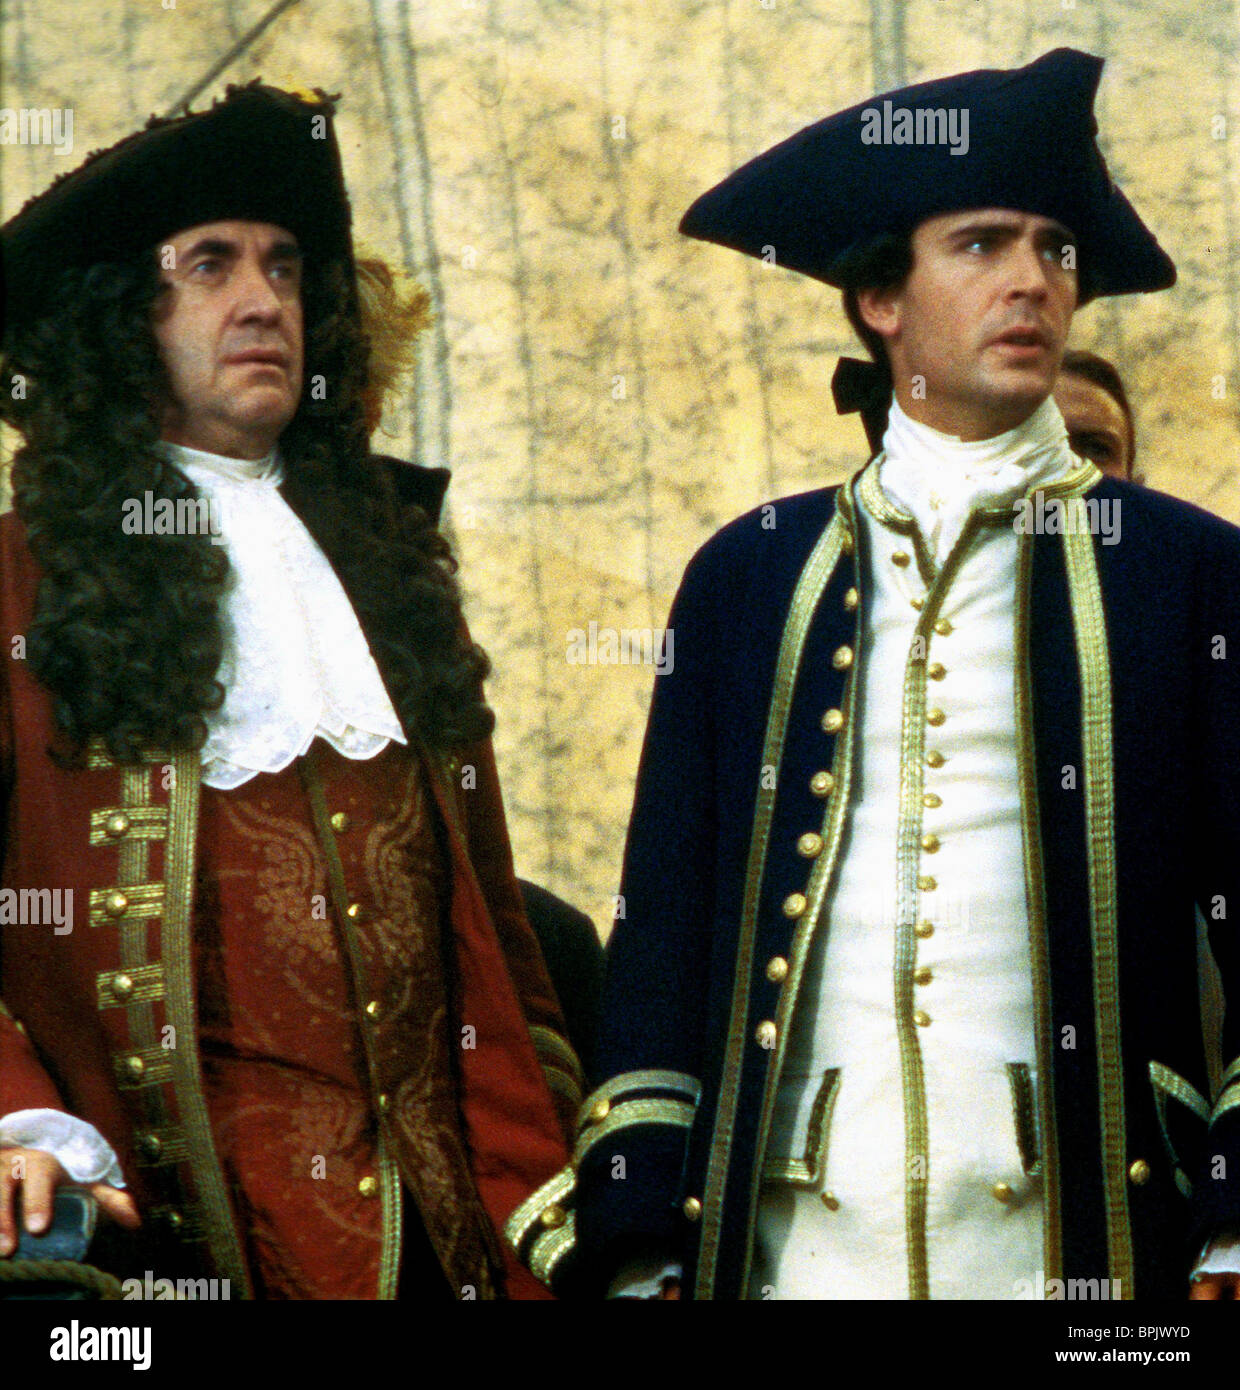 JONATHAN PRYCE & JACK DAVENPORT PIRATES OF THE CARIBBEAN: THE CURSE OF THE BLACK PEARL (2003) Stock Photo